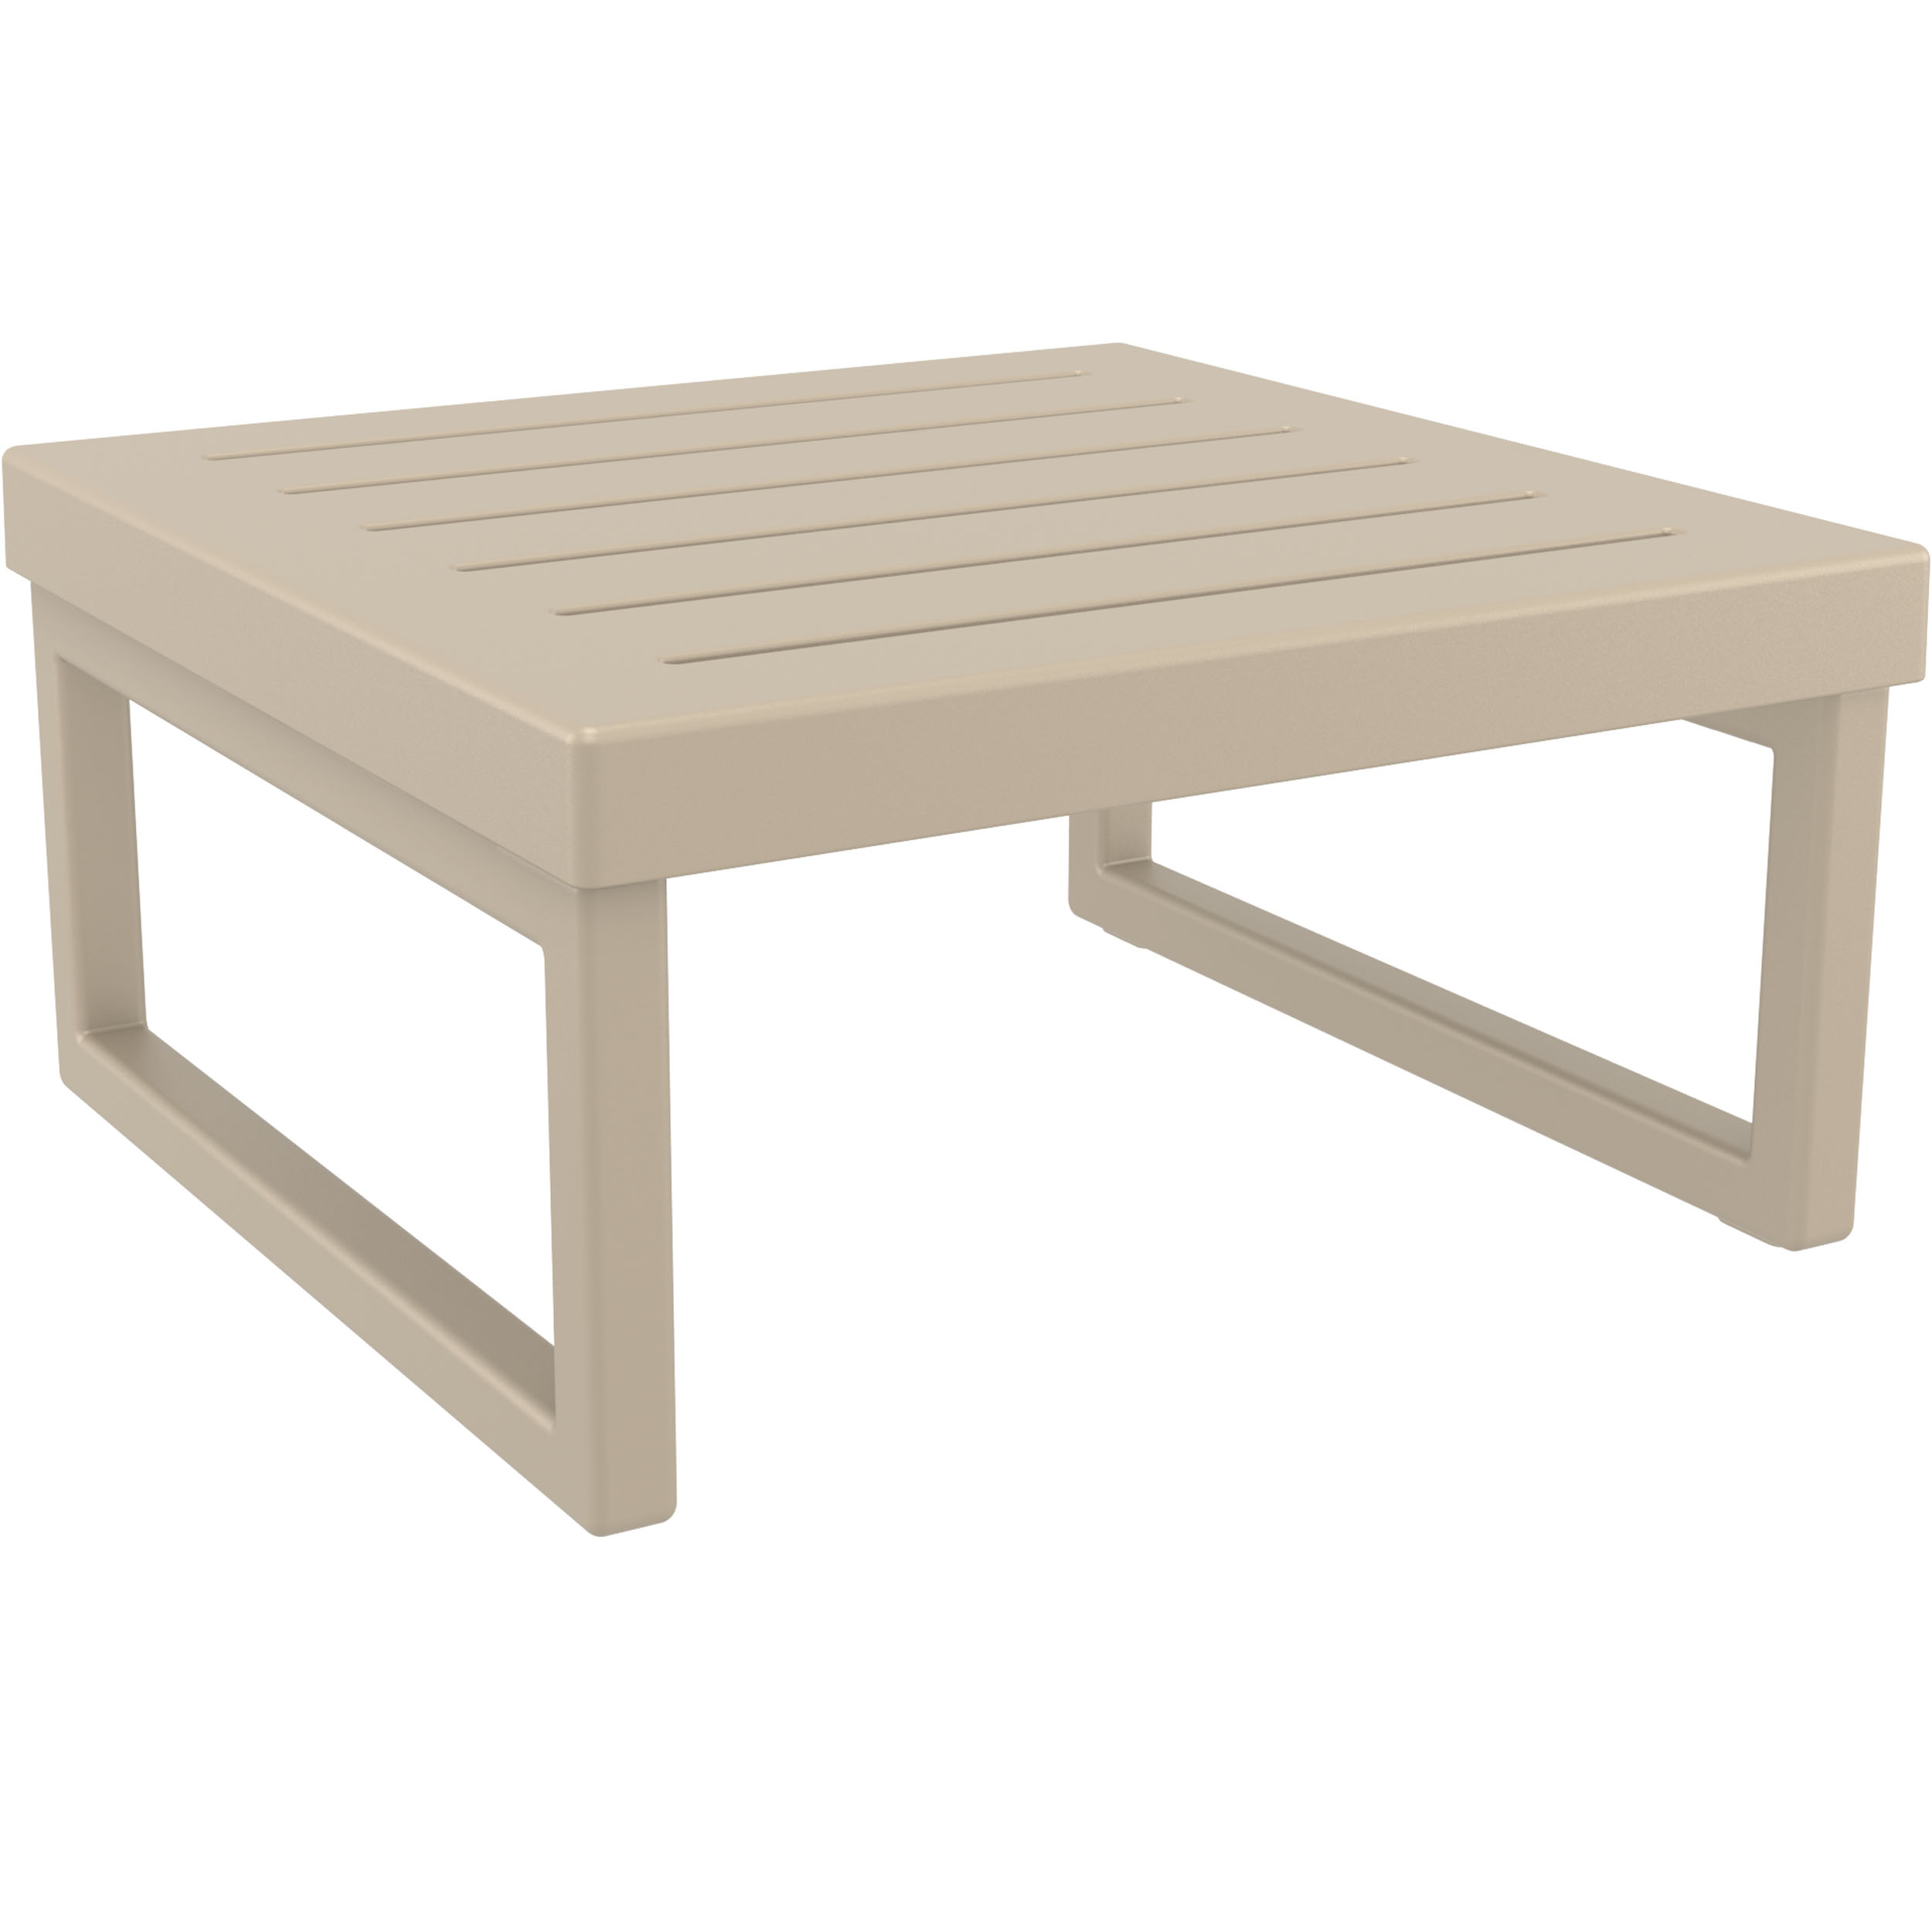 005 ml table taupe front side